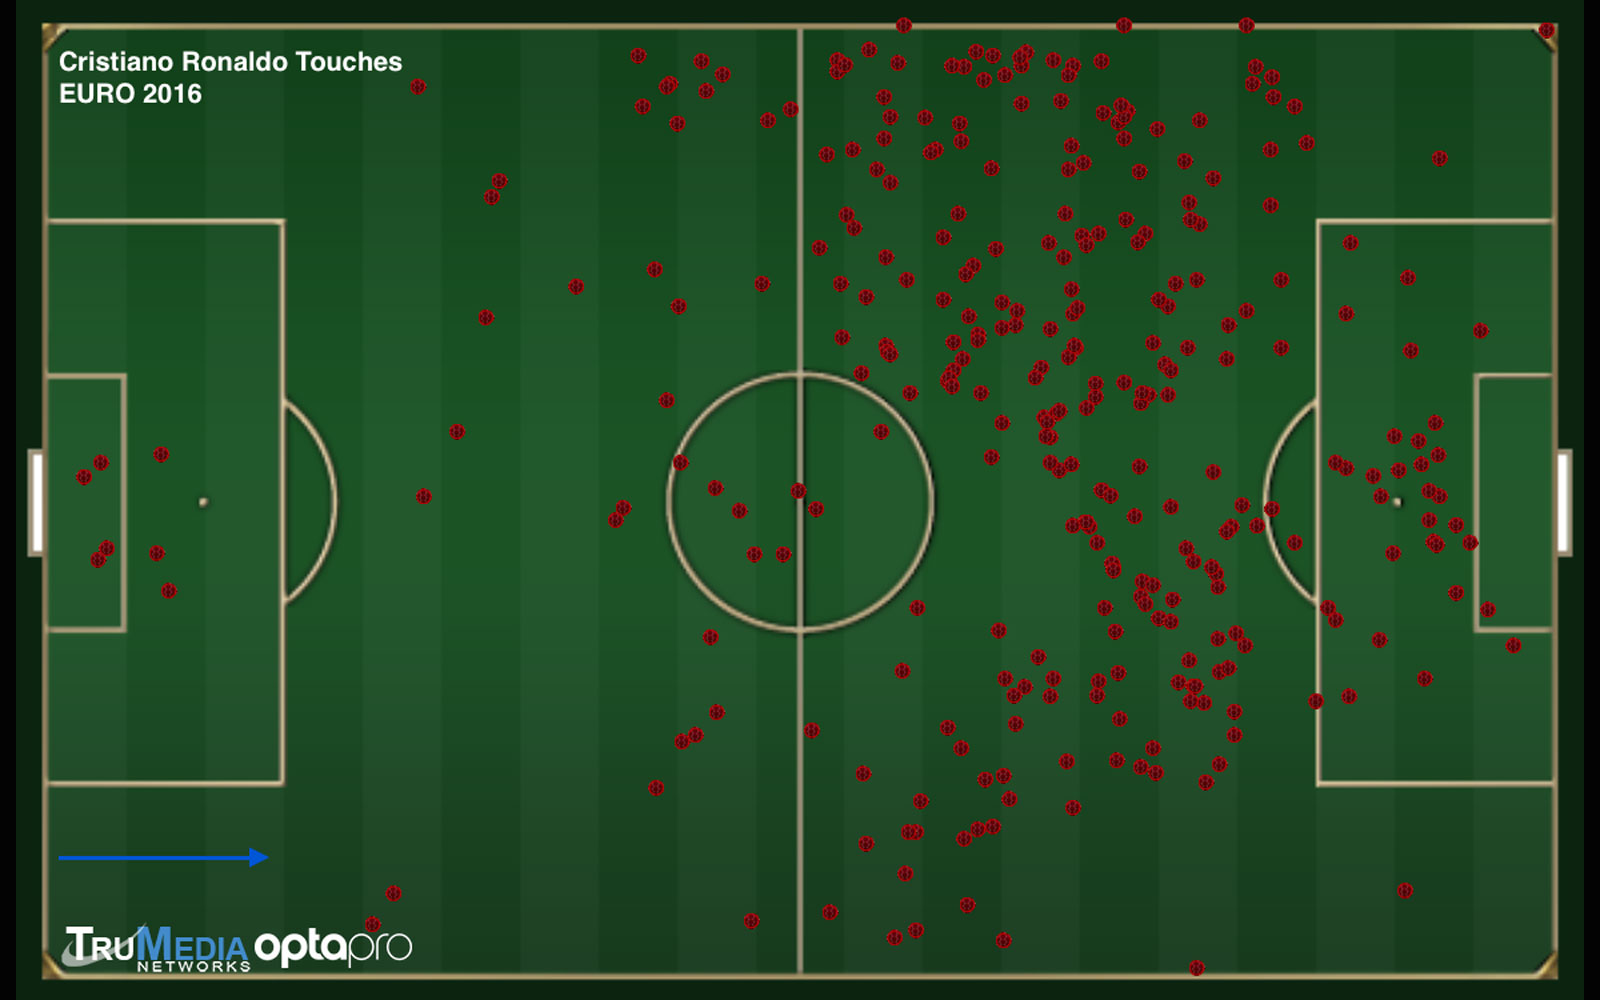 Cristiano Ronaldo's touch chart at Euro 2016 for Portugal